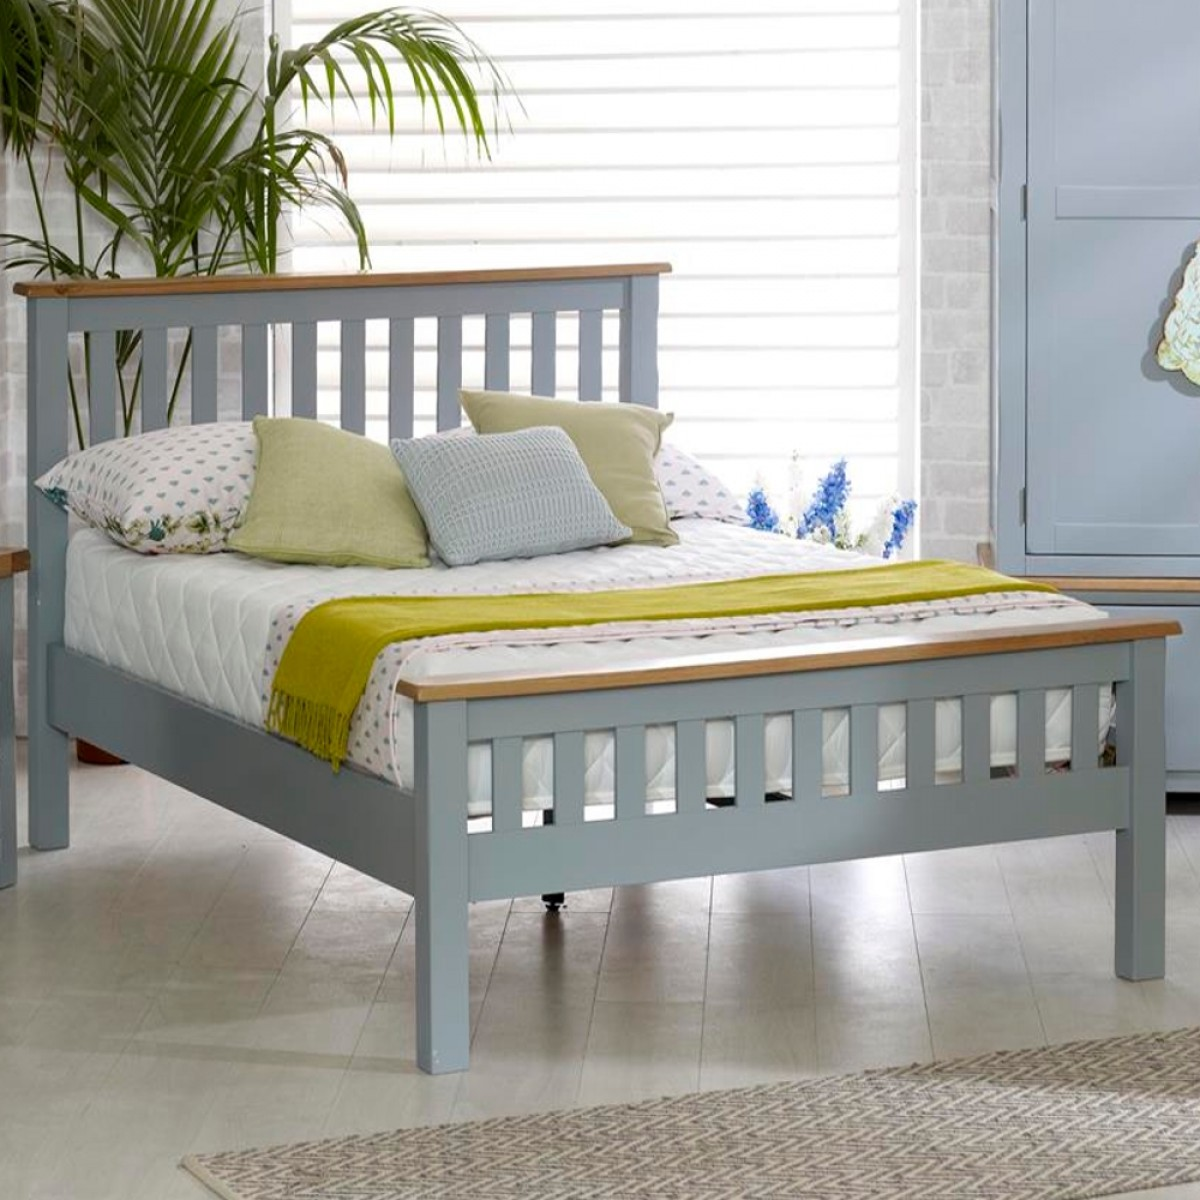 New Hampshire Grey and Oak High Foot End Wooden Bed